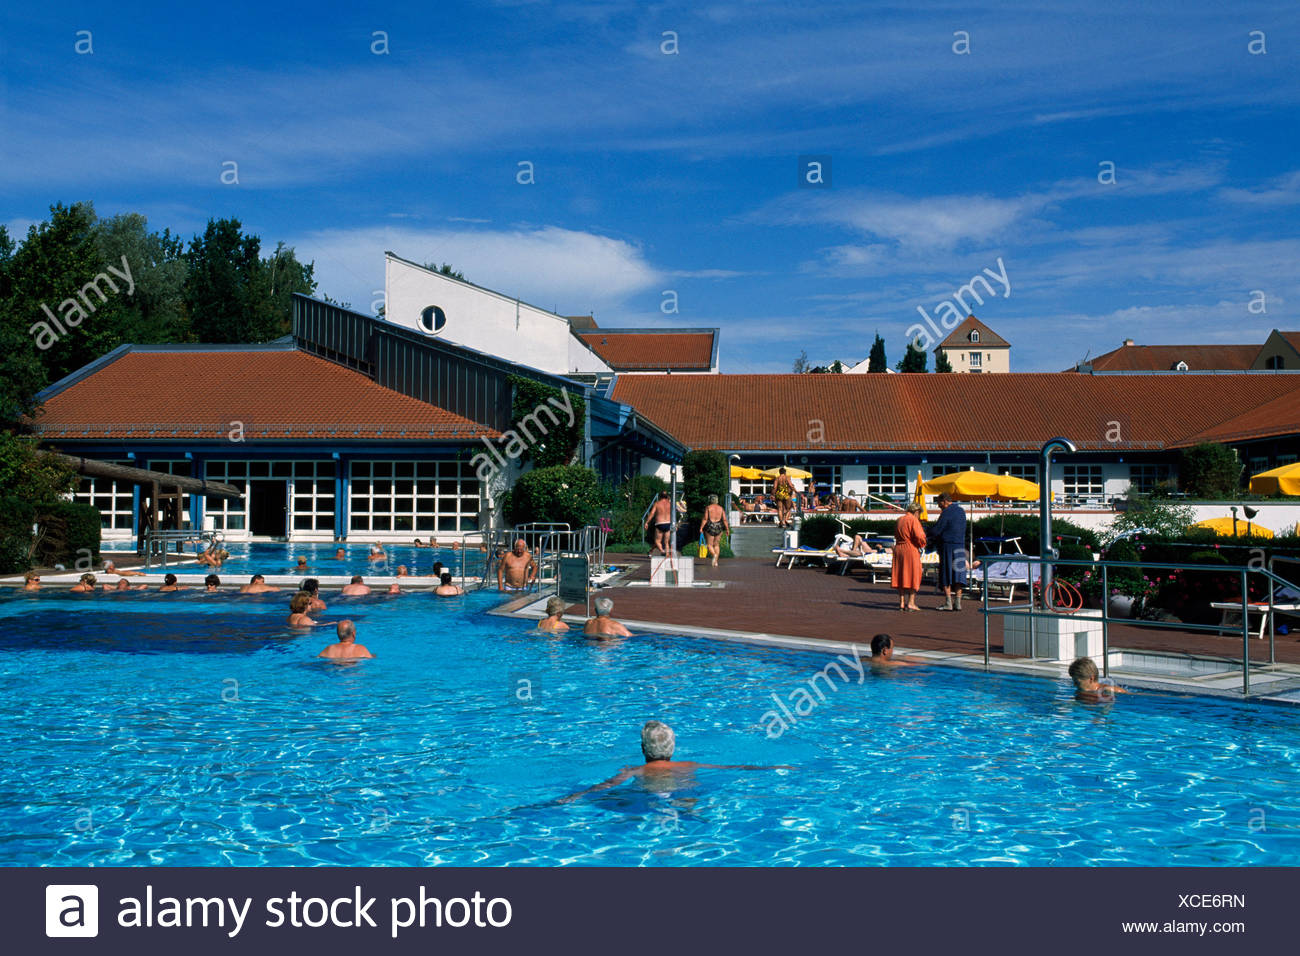 Thermal pool, Wohlfuehltherme, Feel Good thermae, Bad Griesbach, Lower Bavaria, Germany, Europe - Stock Image